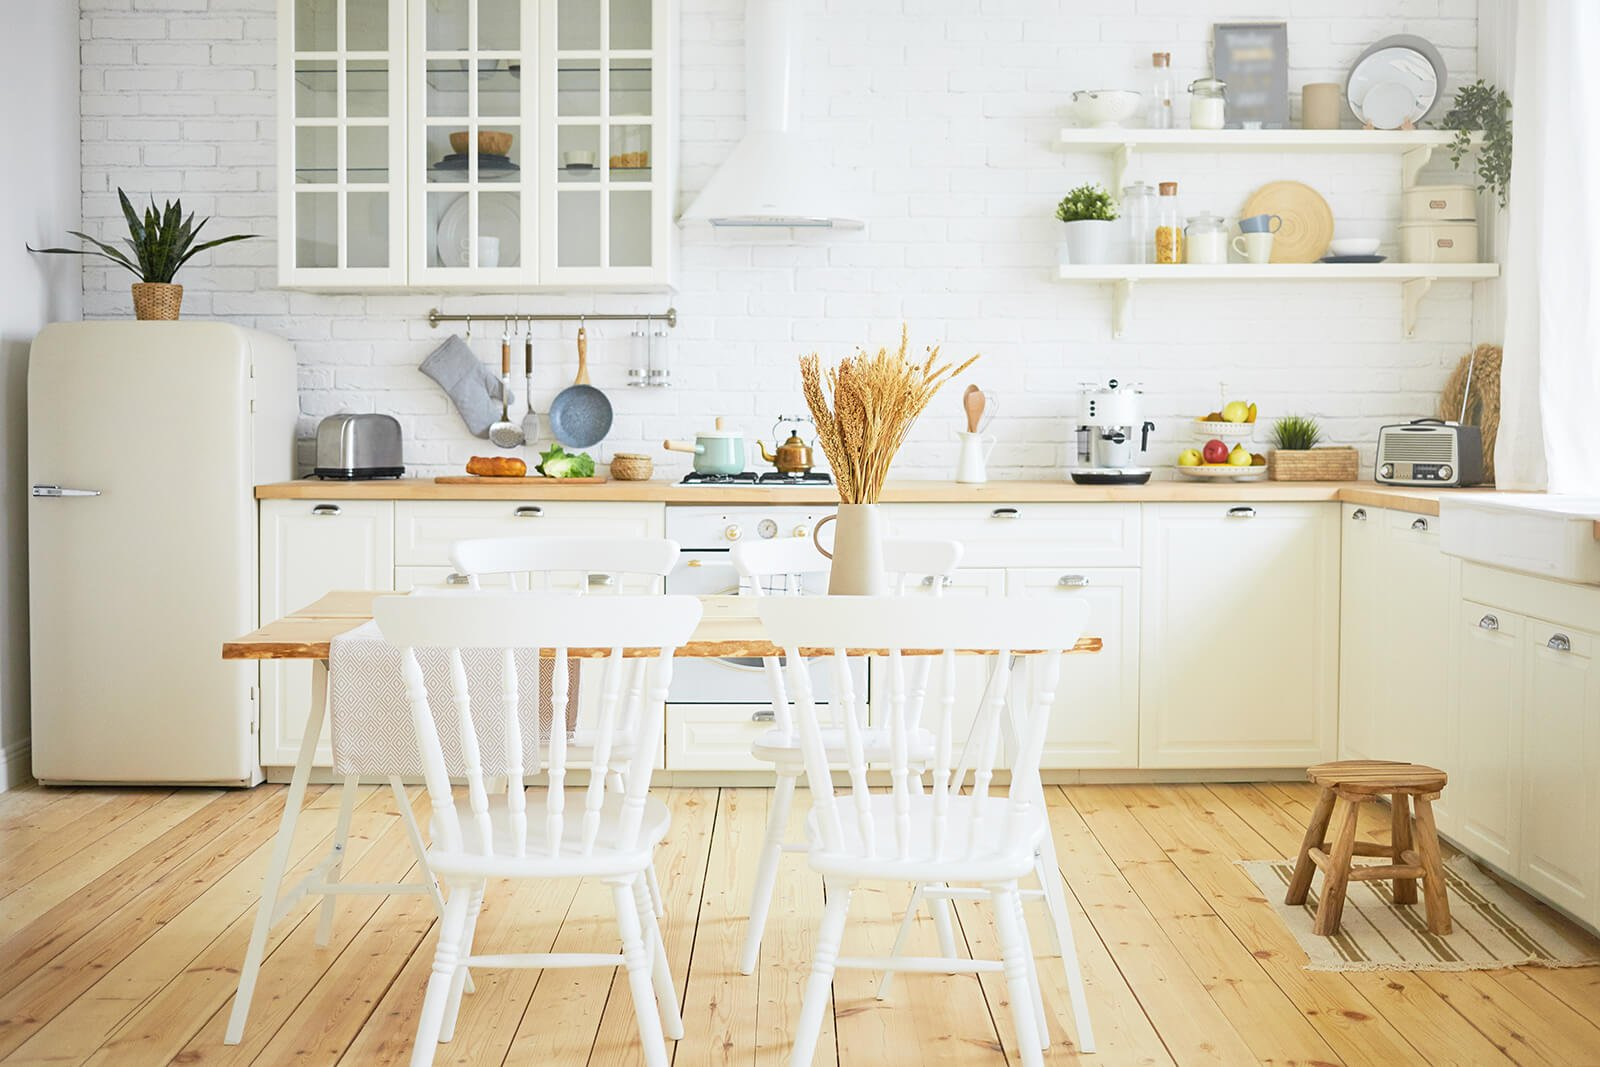 stylish-scandinavian-kitchen-interior-chairs-table-foreground-fridge-long-wooden-counter-with-machines-utensils-shelves-interiors-design-ideas-home-coziness-concept (2) (1)